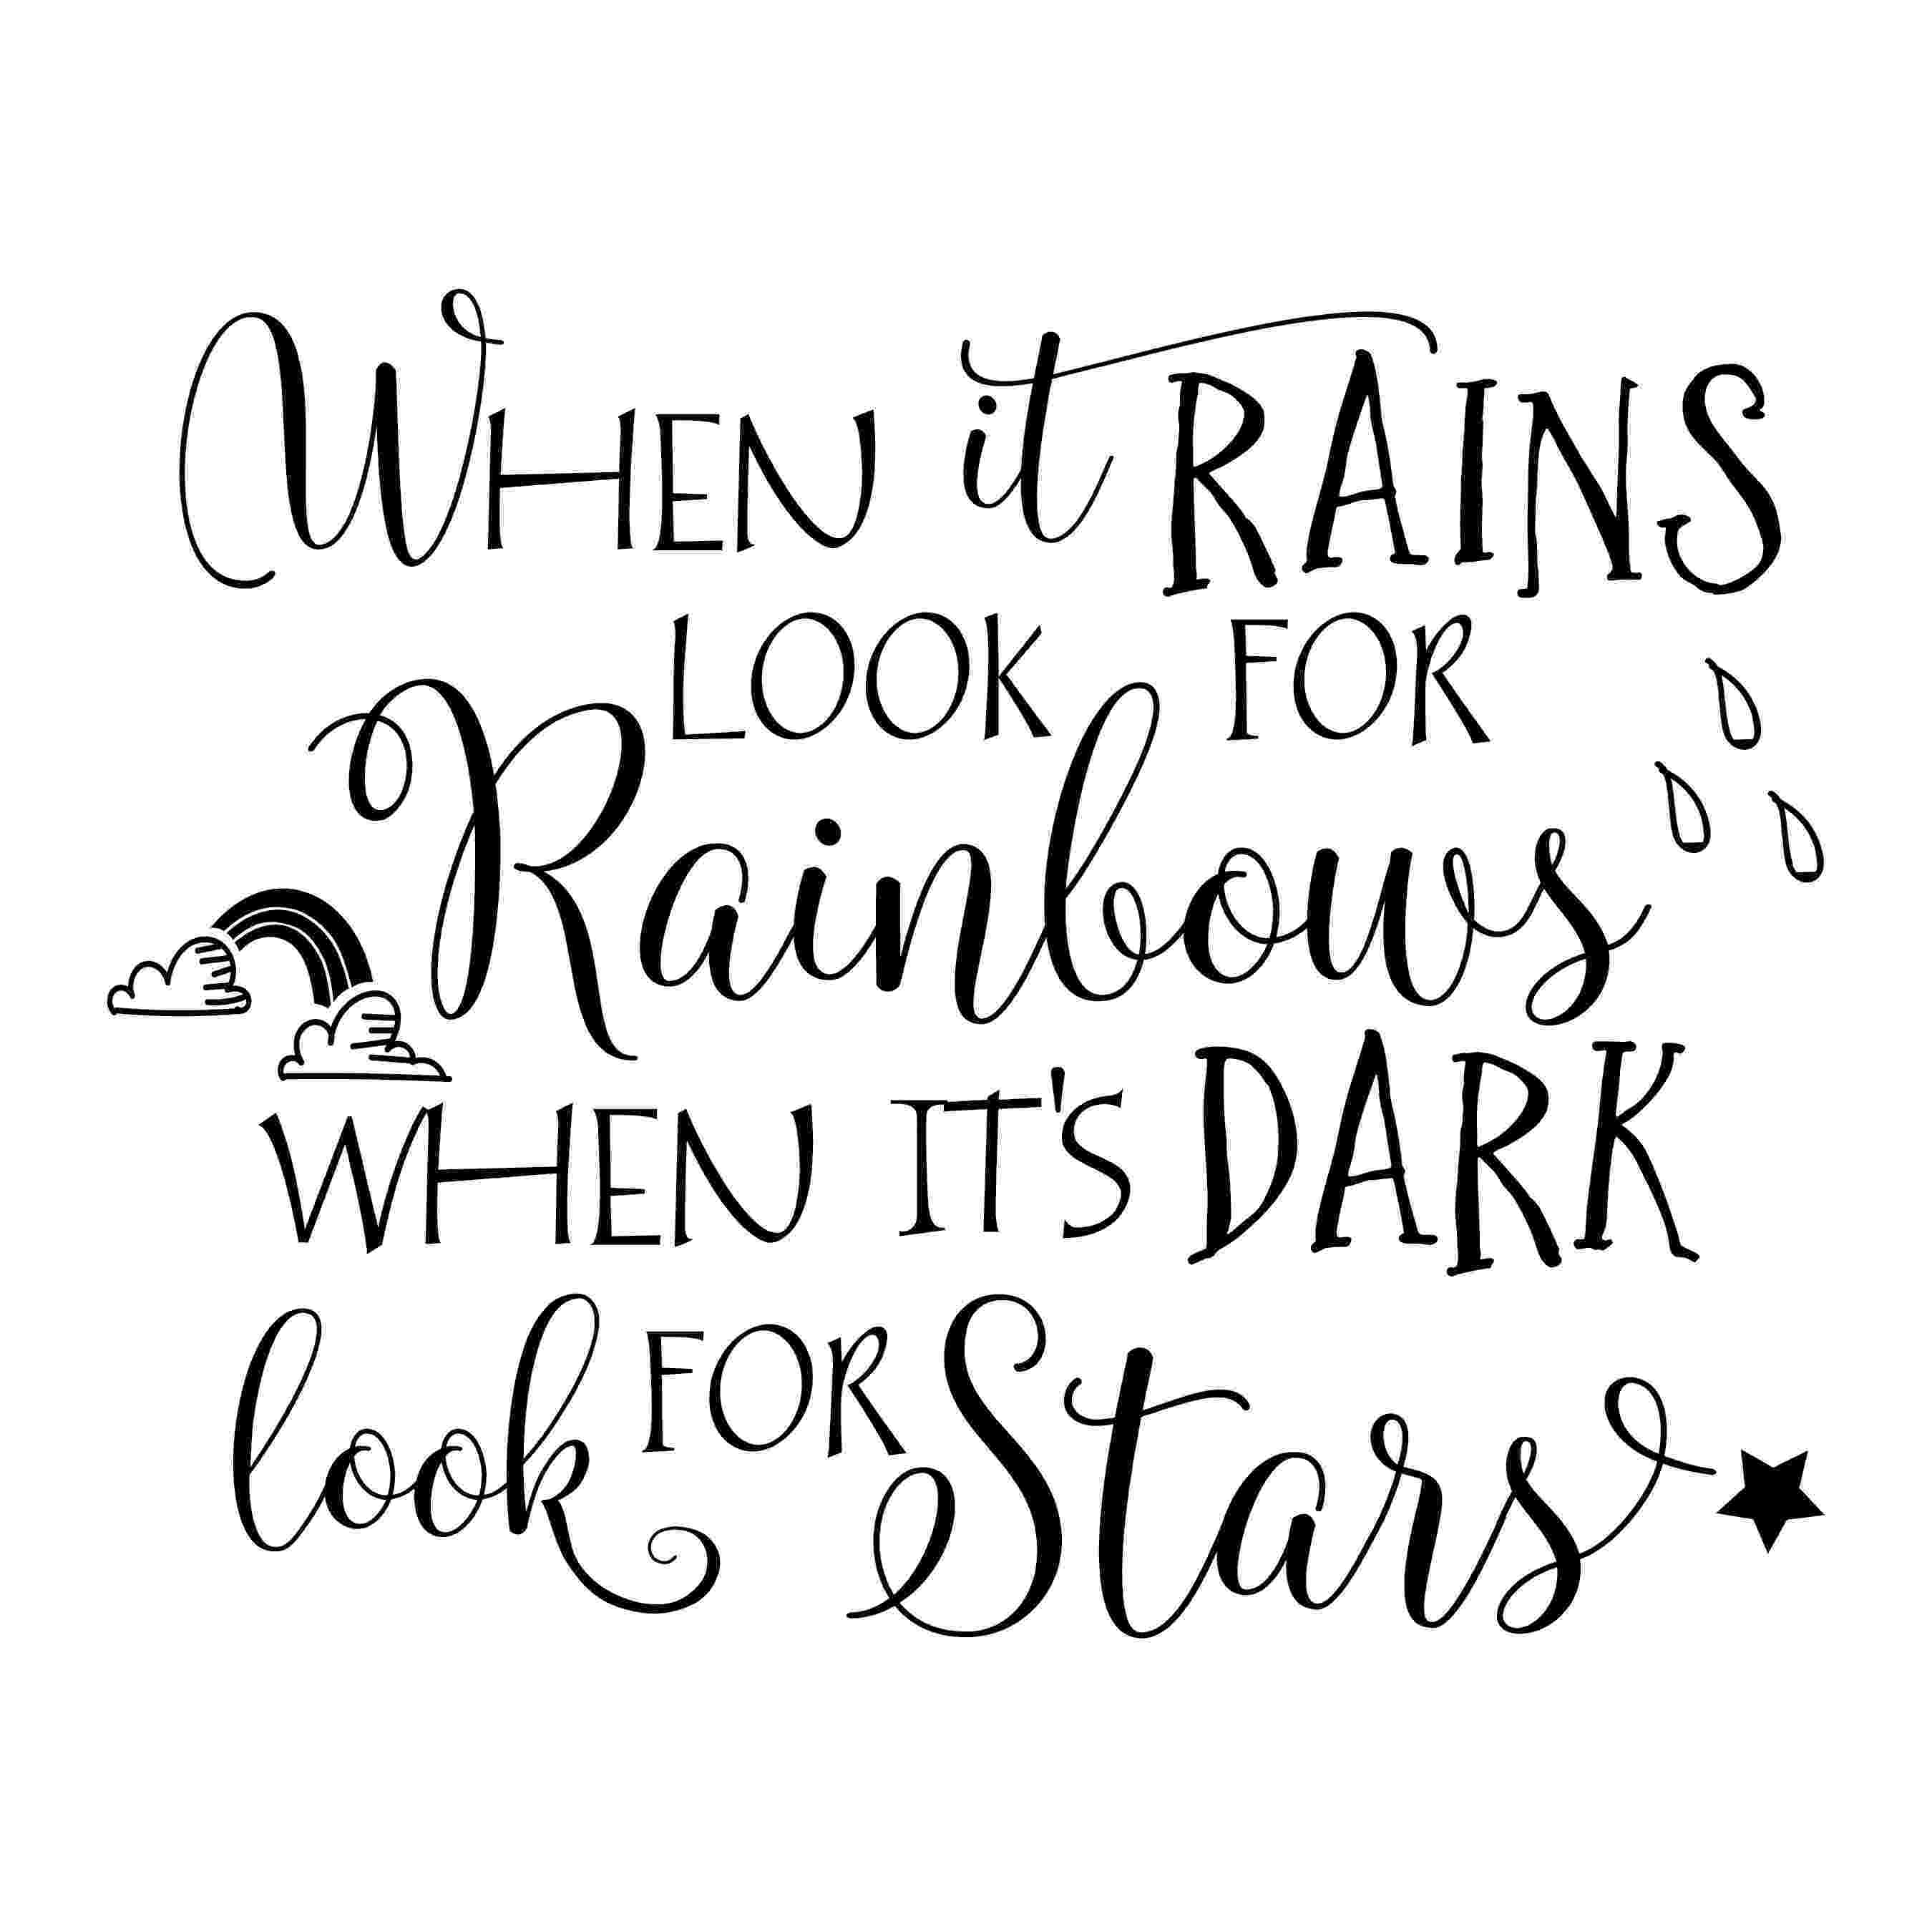 quote about colors of the rainbow rainbow black and white rainbow clipart black and white of quote colors about rainbow the